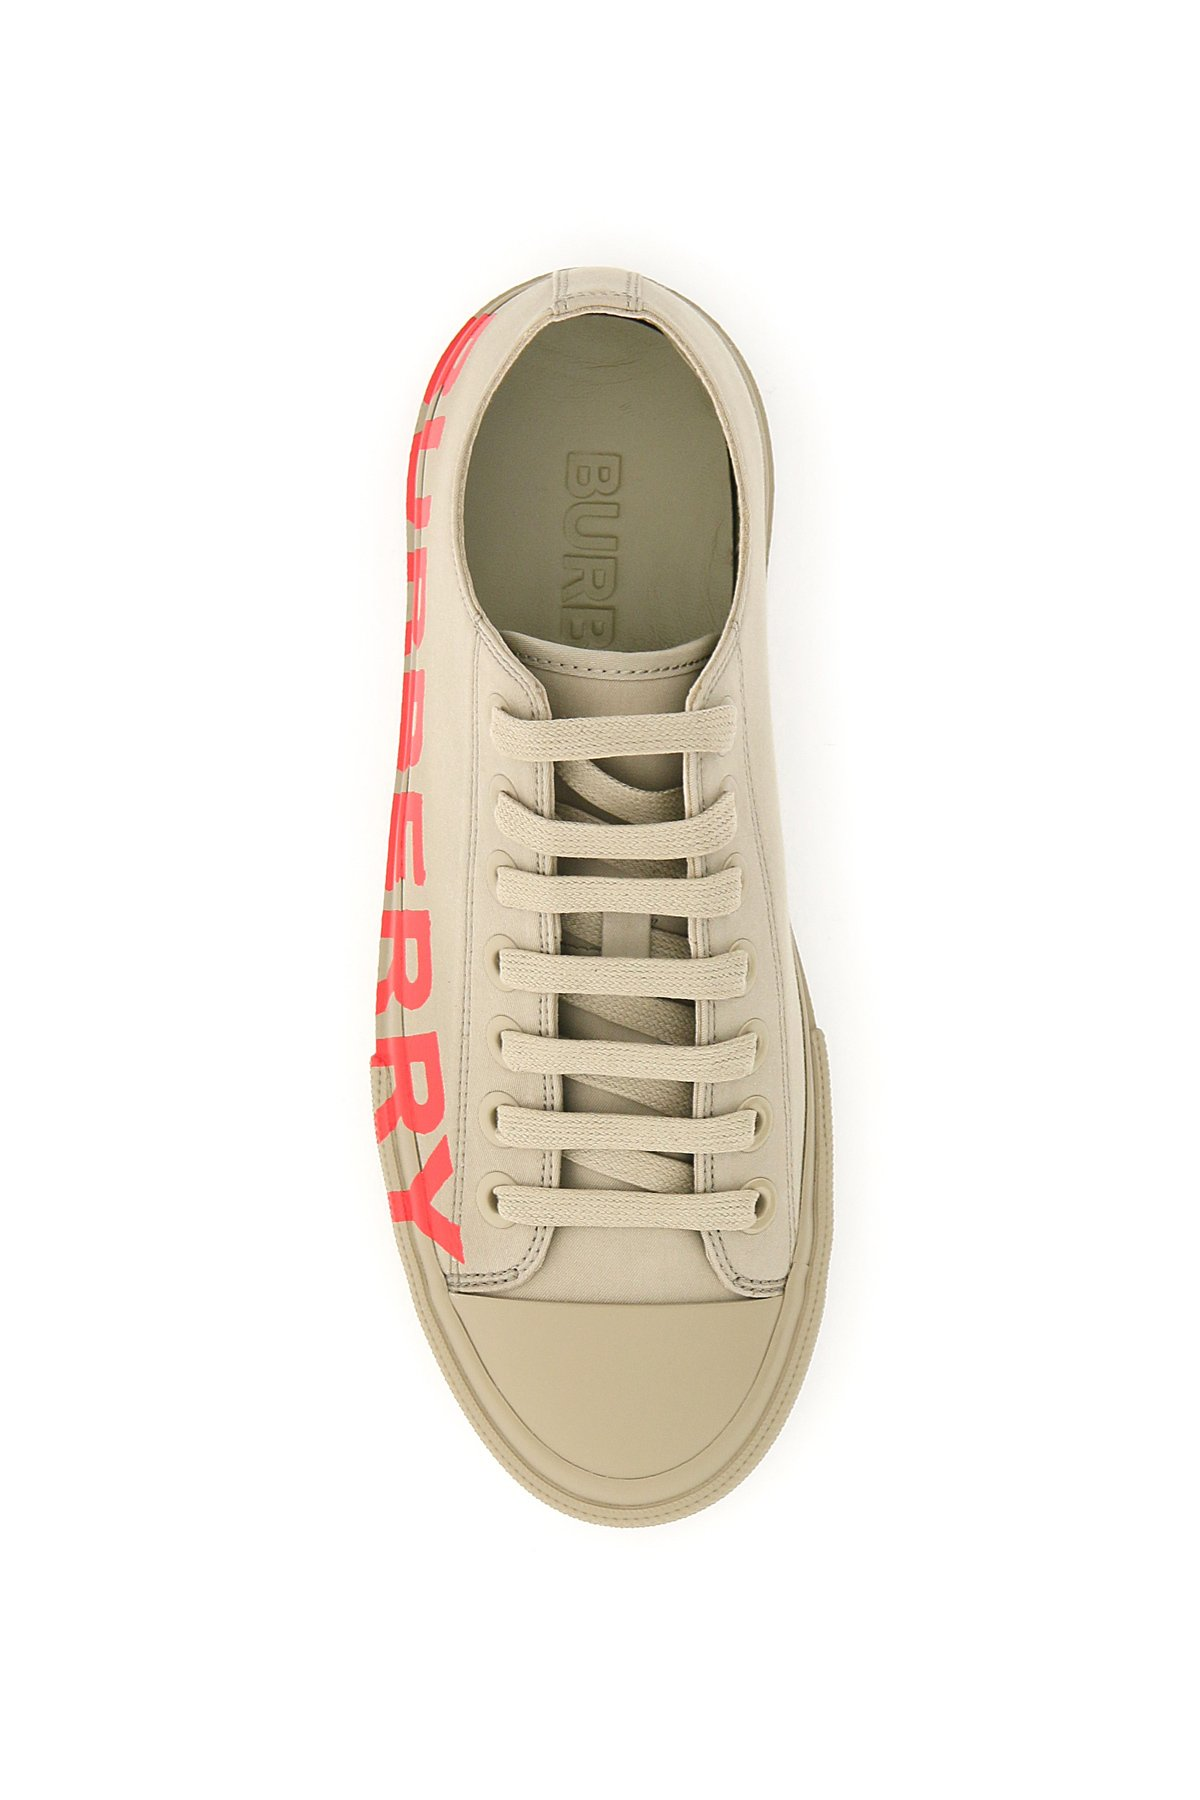 Burberry sneakers stampa logo larkhall